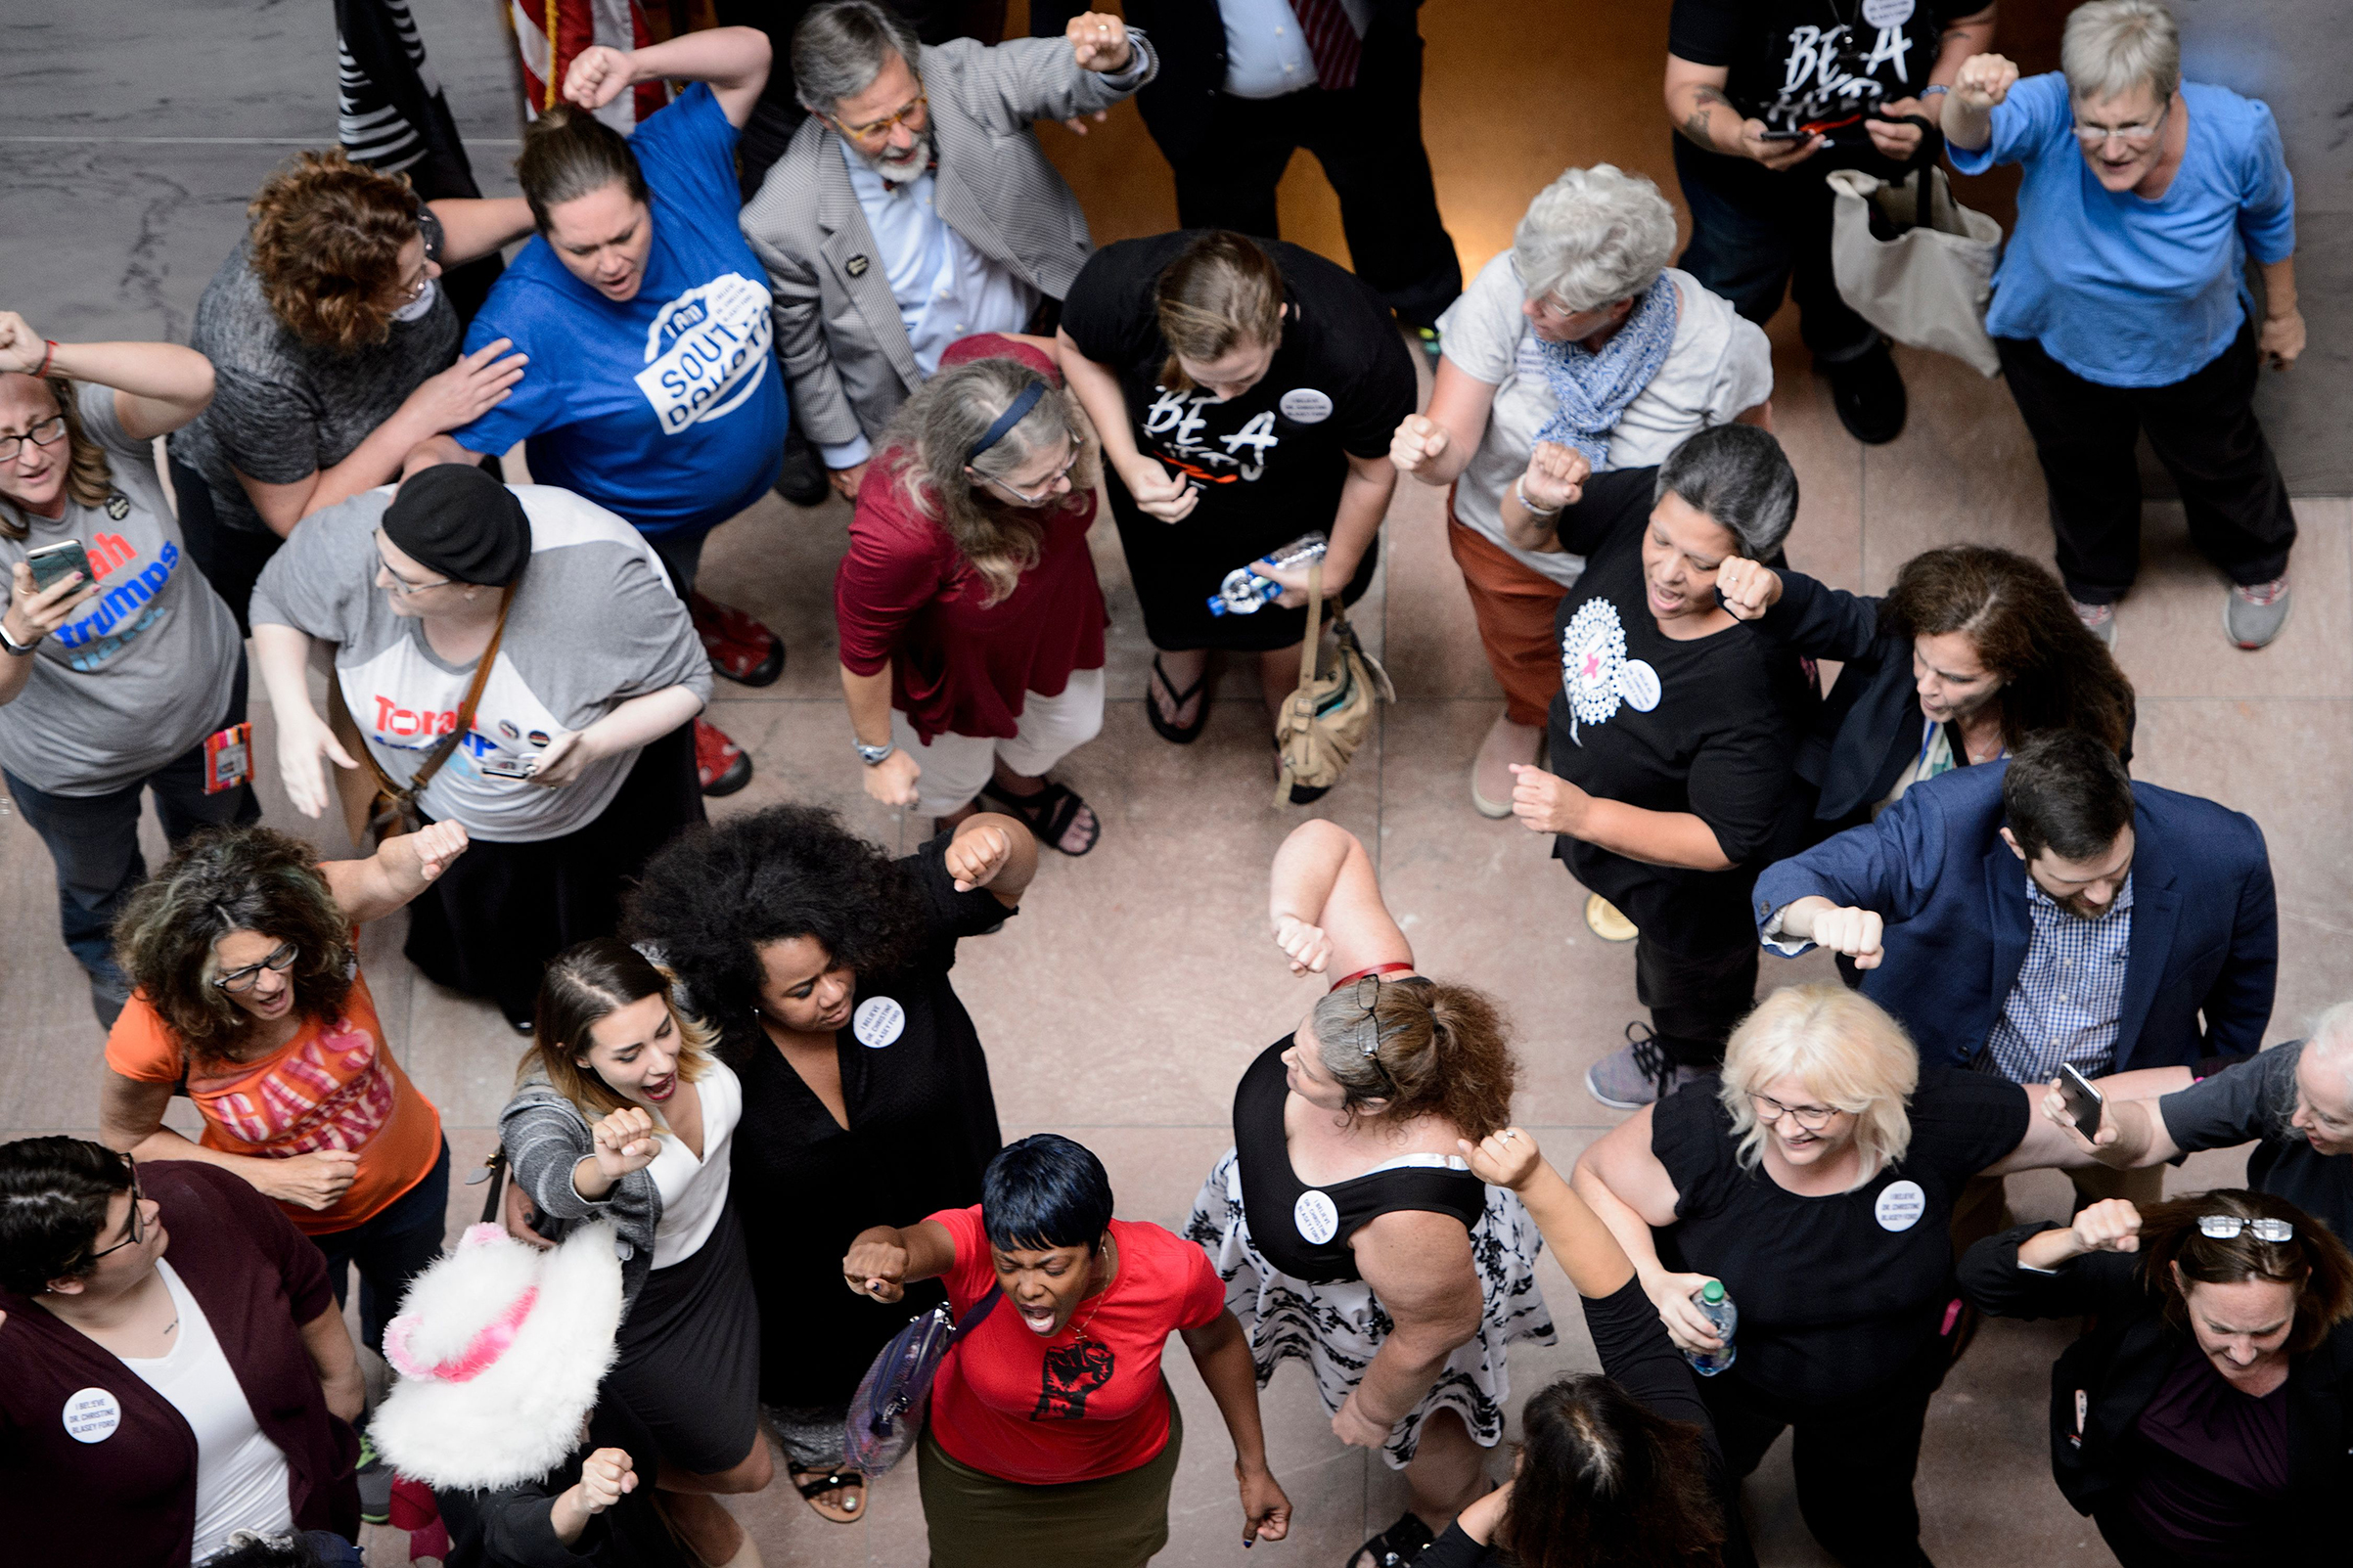 Activists rally outside the office of Senate Judiciary Committee Chairman, Senator Chuck Grassley (R-IA), during protests against Judge Brett Kavanaugh on Capitol Hill Sept. 20, 2018 in Washington, D.C.